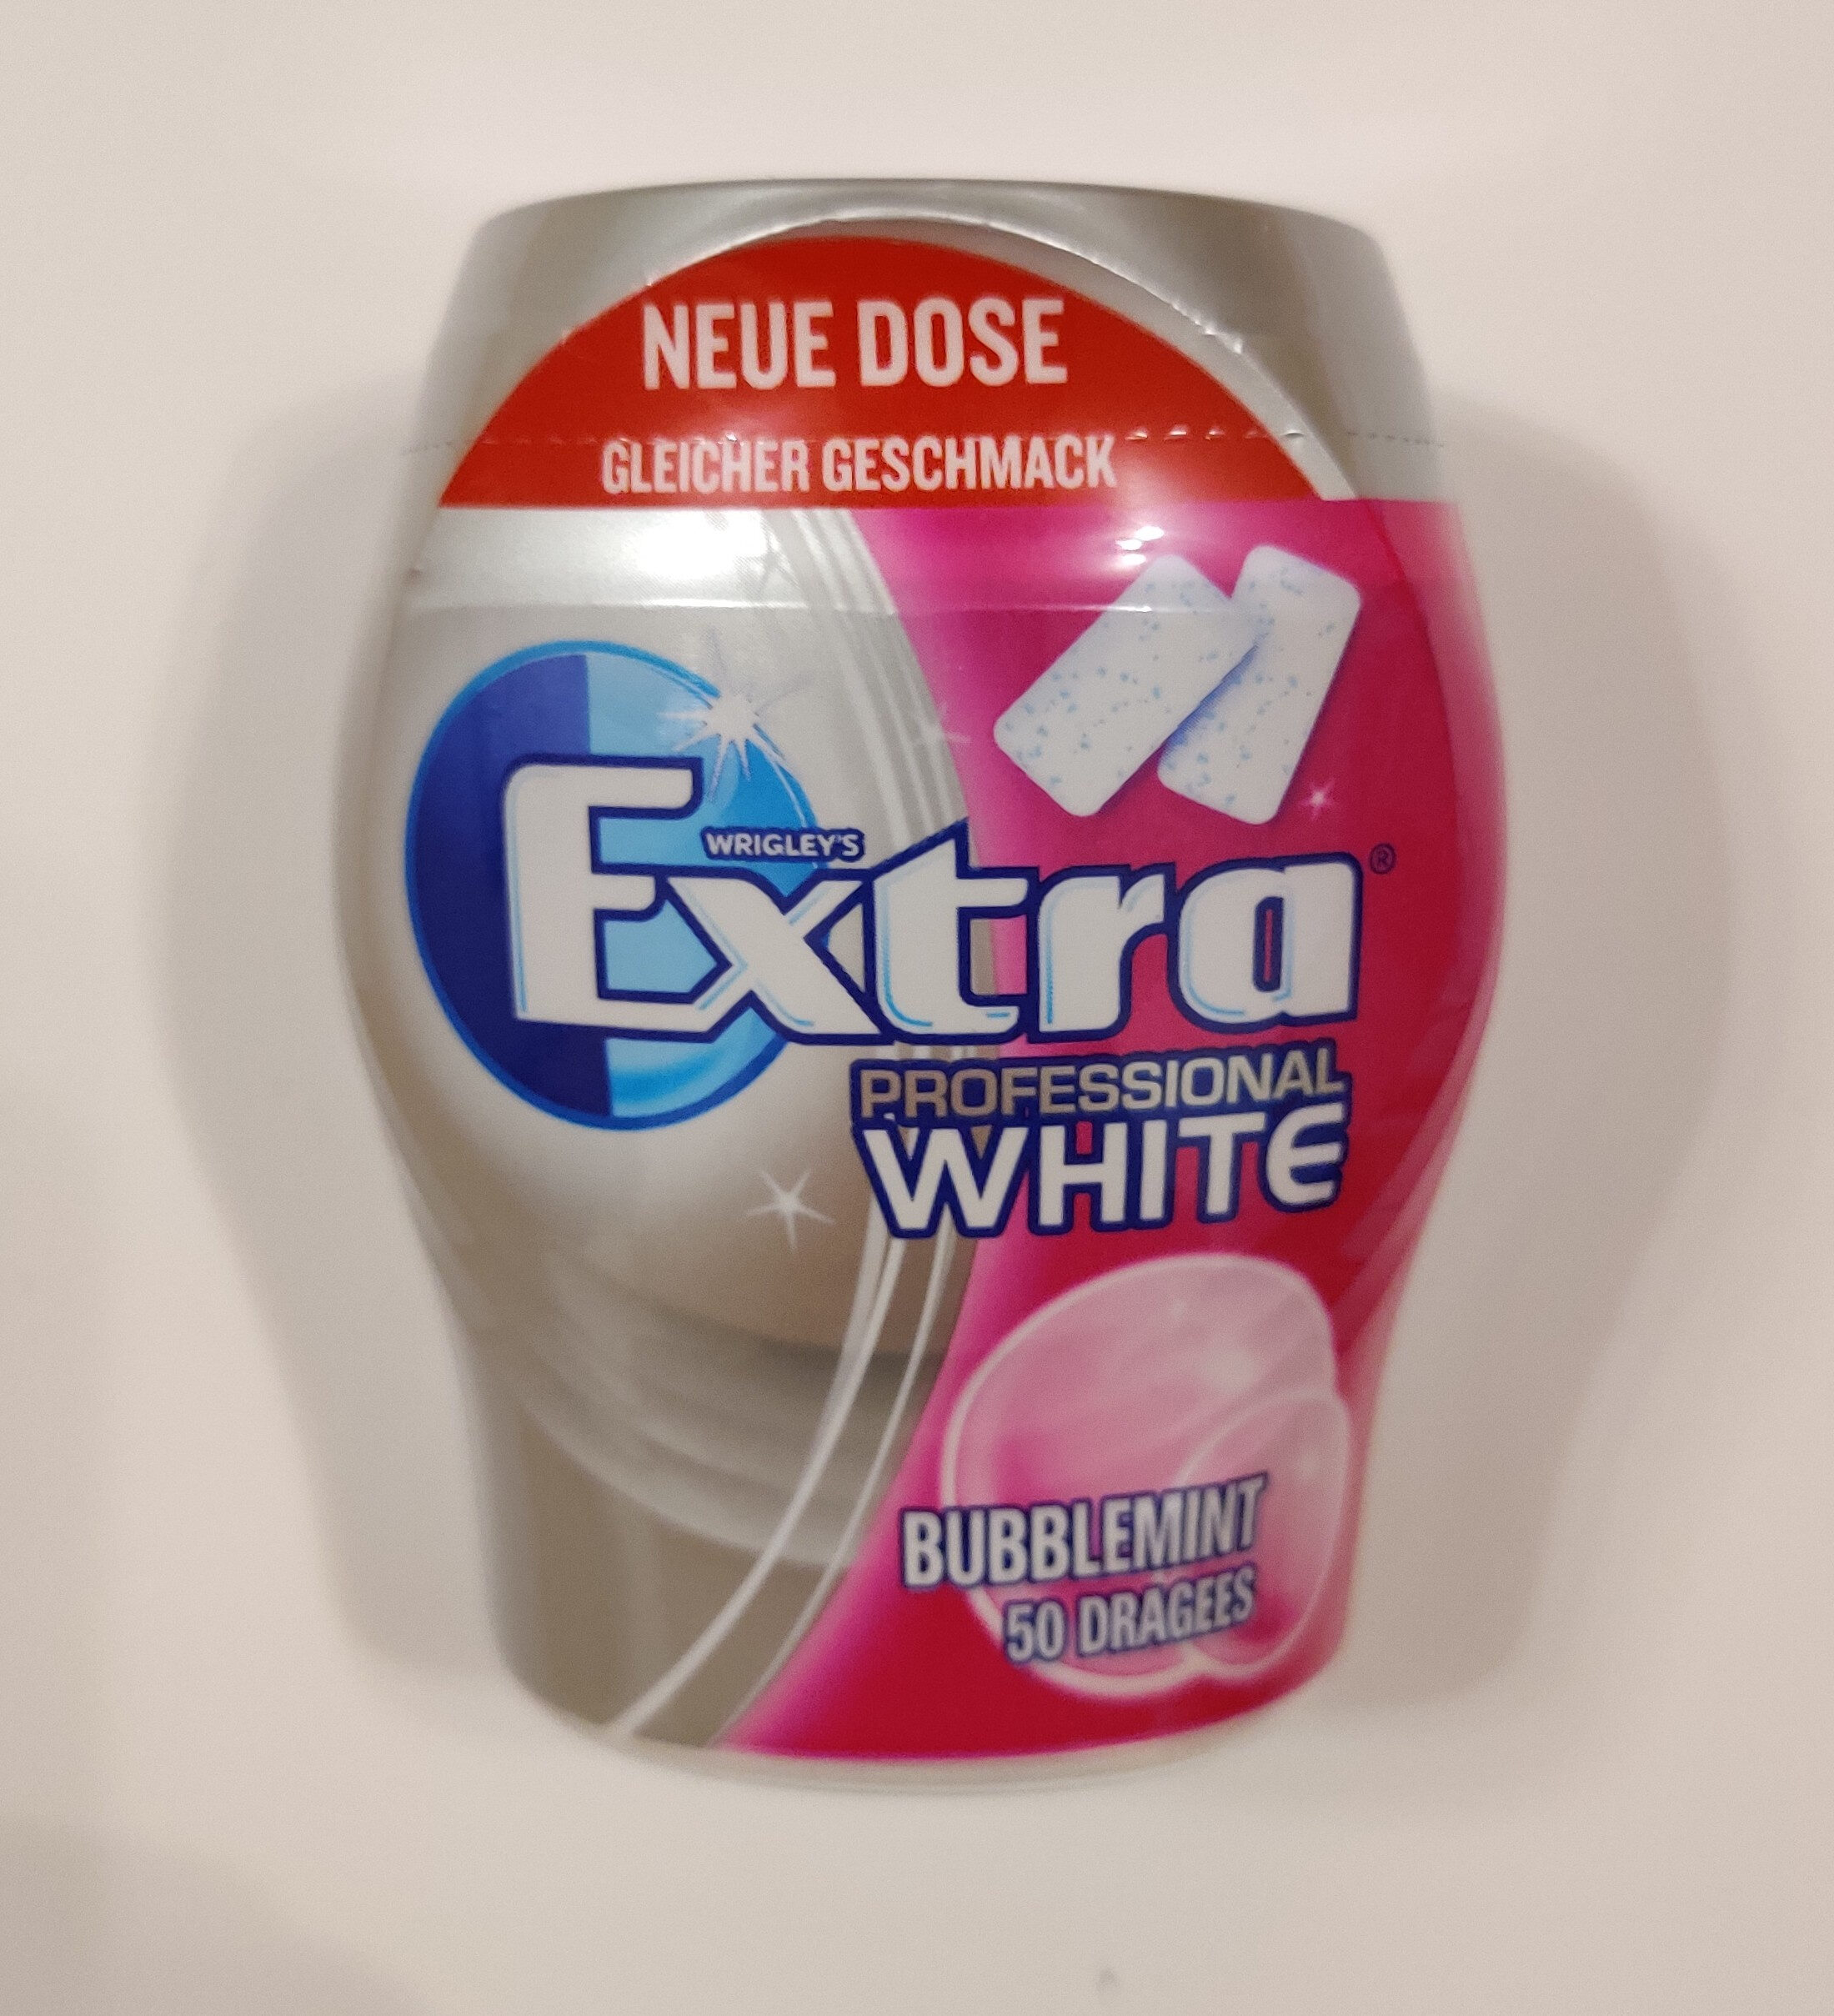 Extra Professional White Bubblemint - Product - de